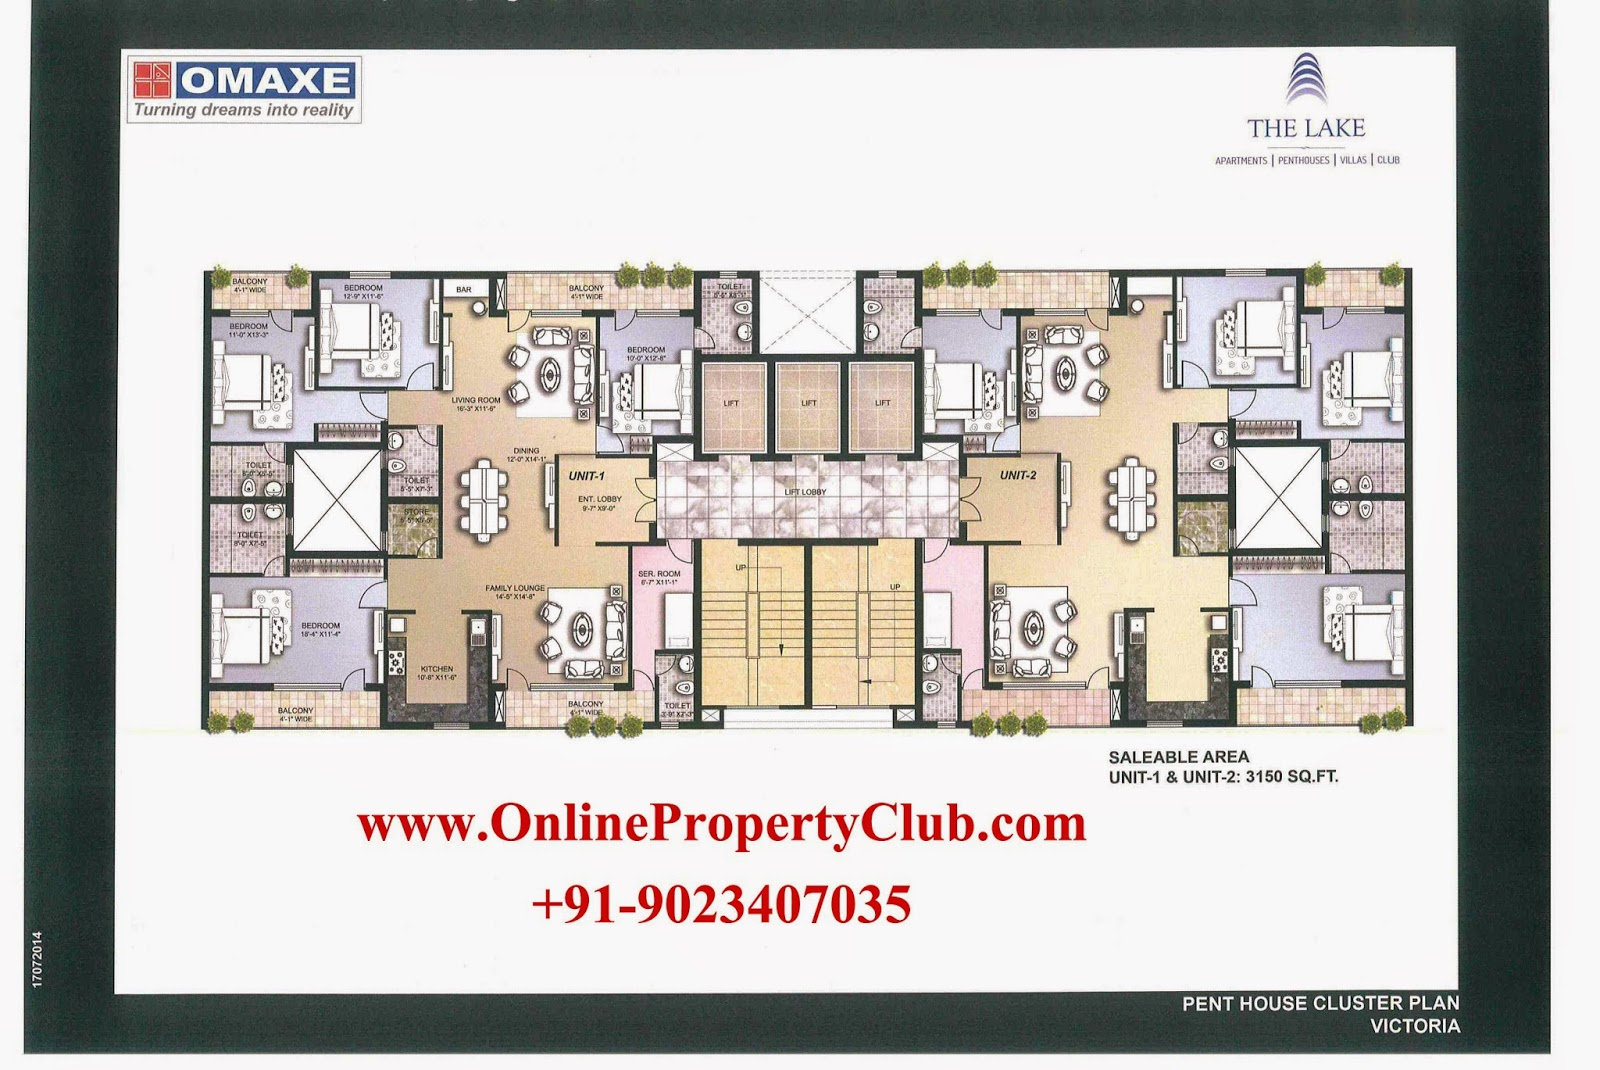 The Lake - 2,3,4 BHK Flats Apartments in Omaxe New Chandigarh Mullanpur